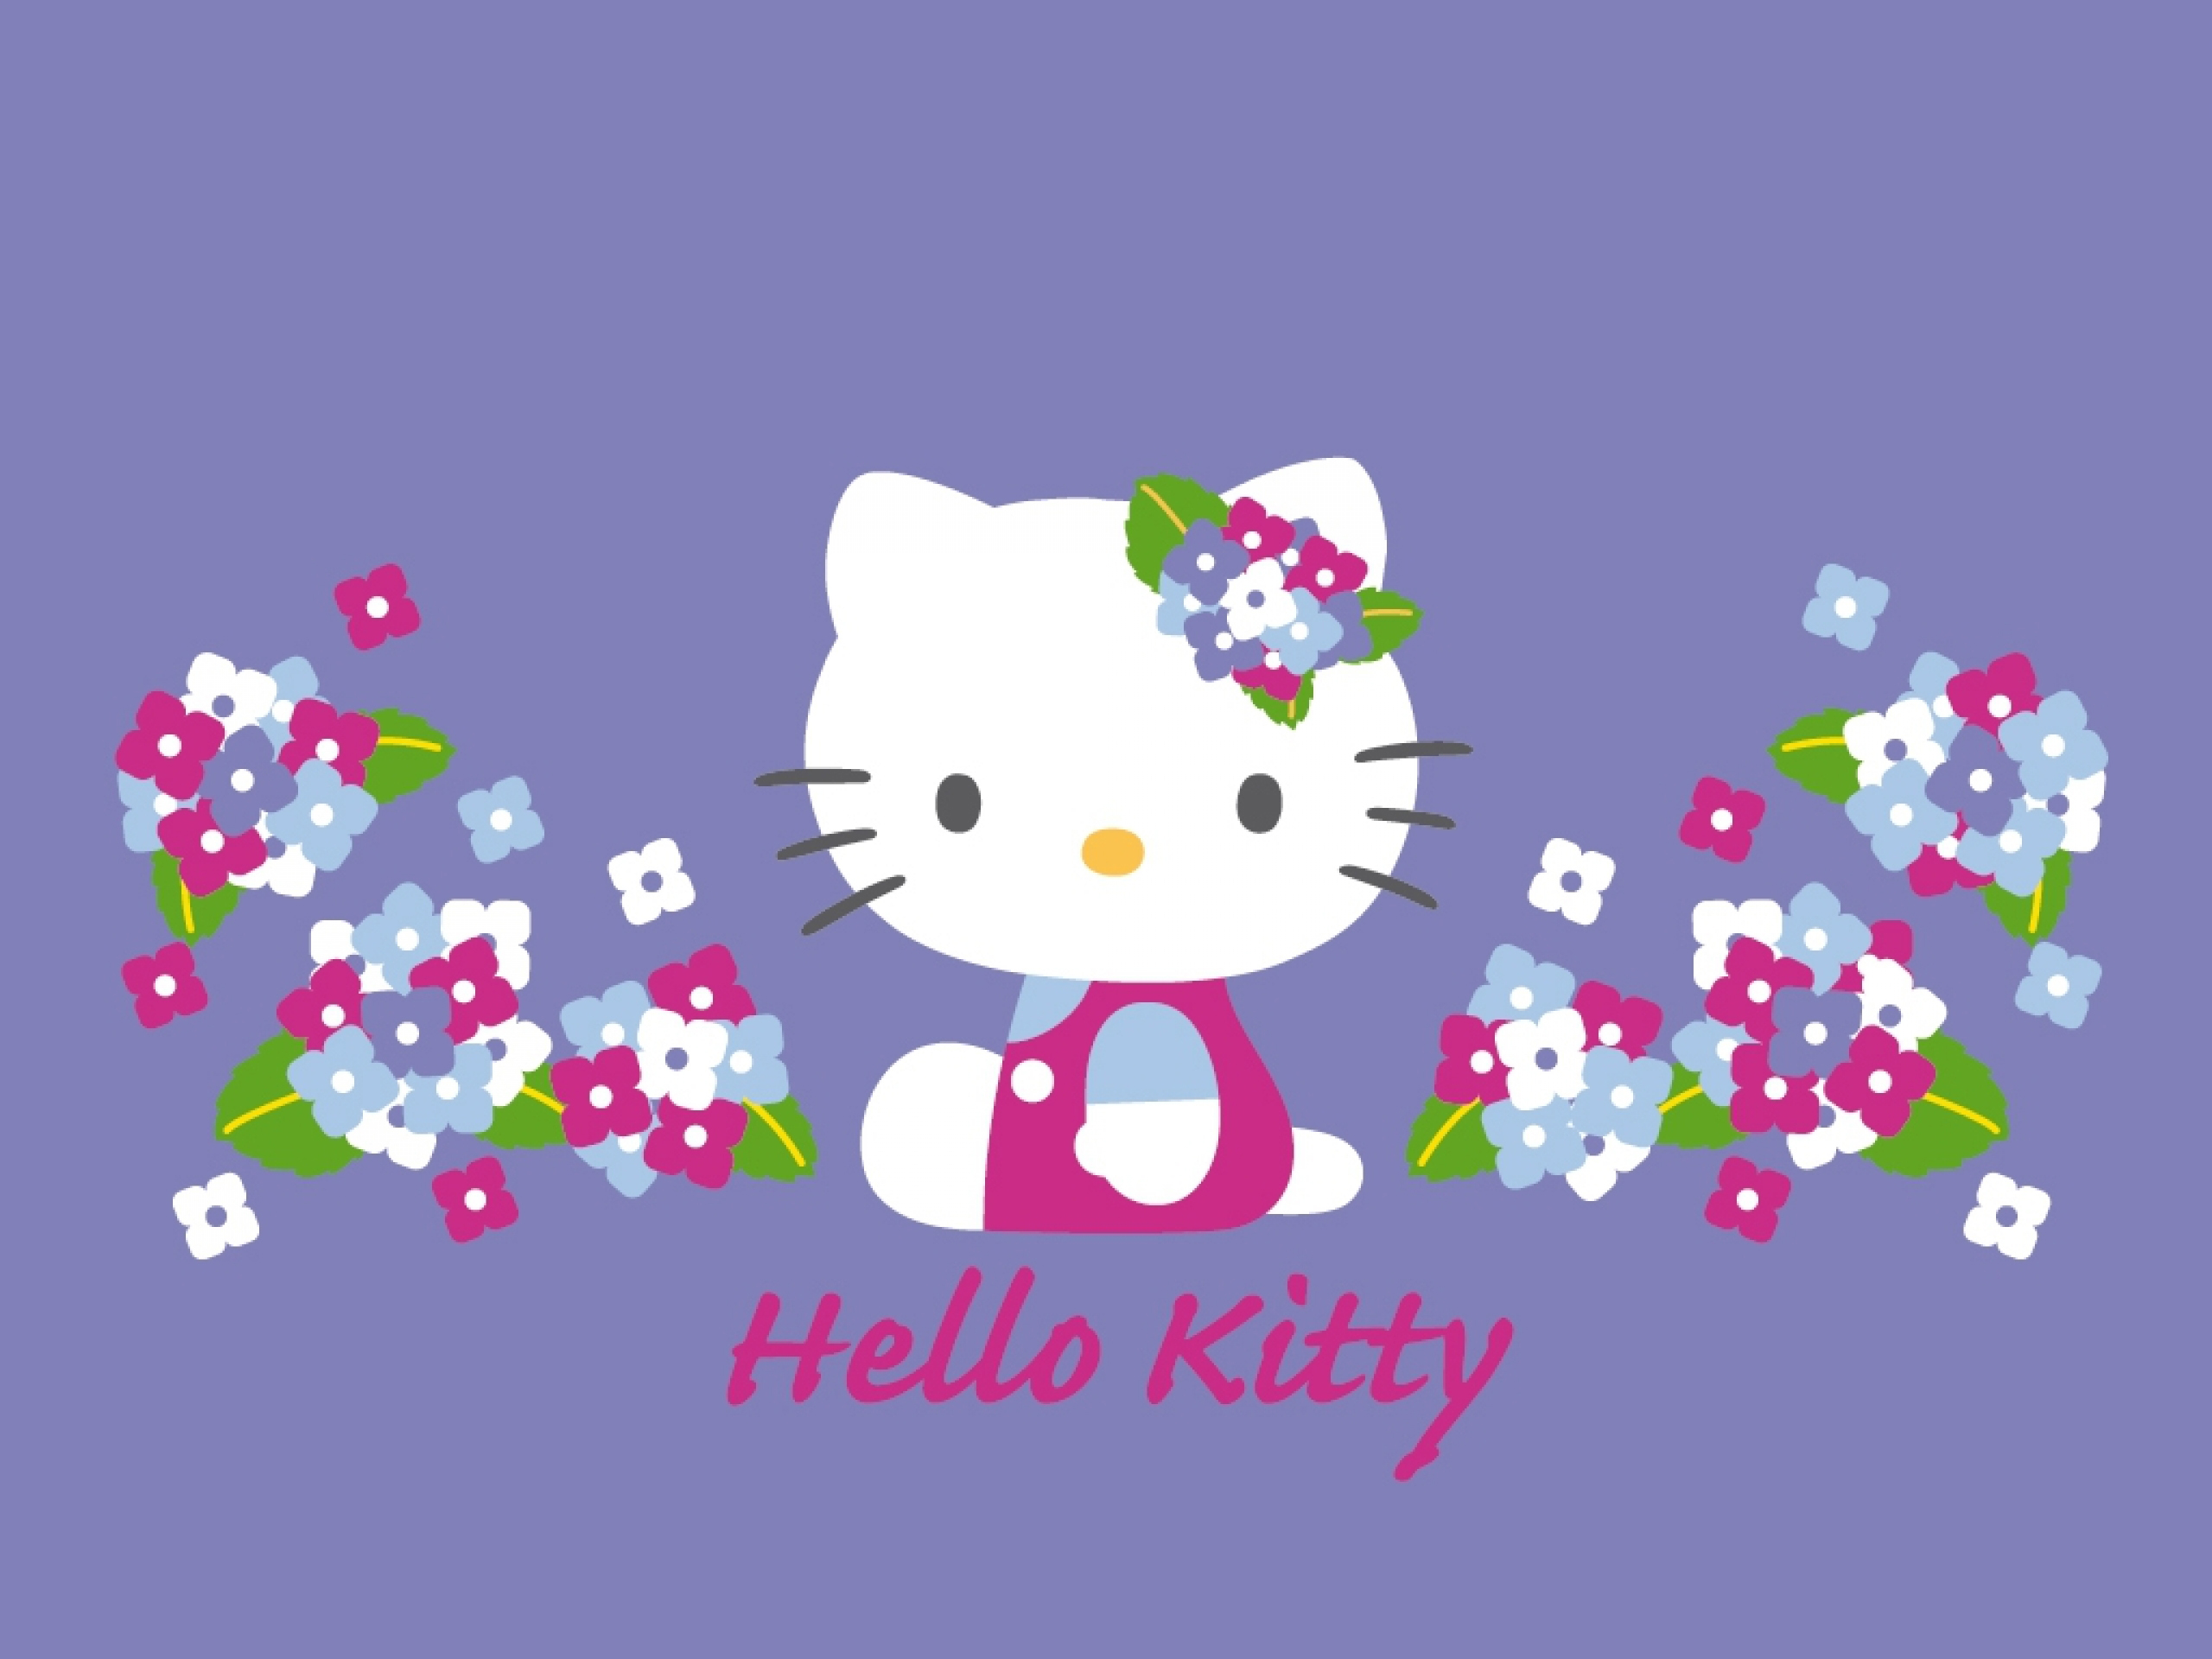 Cute Baby Girl Wallpapers For Whatsapp Hello Kitty Wallpaper Hd Pixelstalk Net